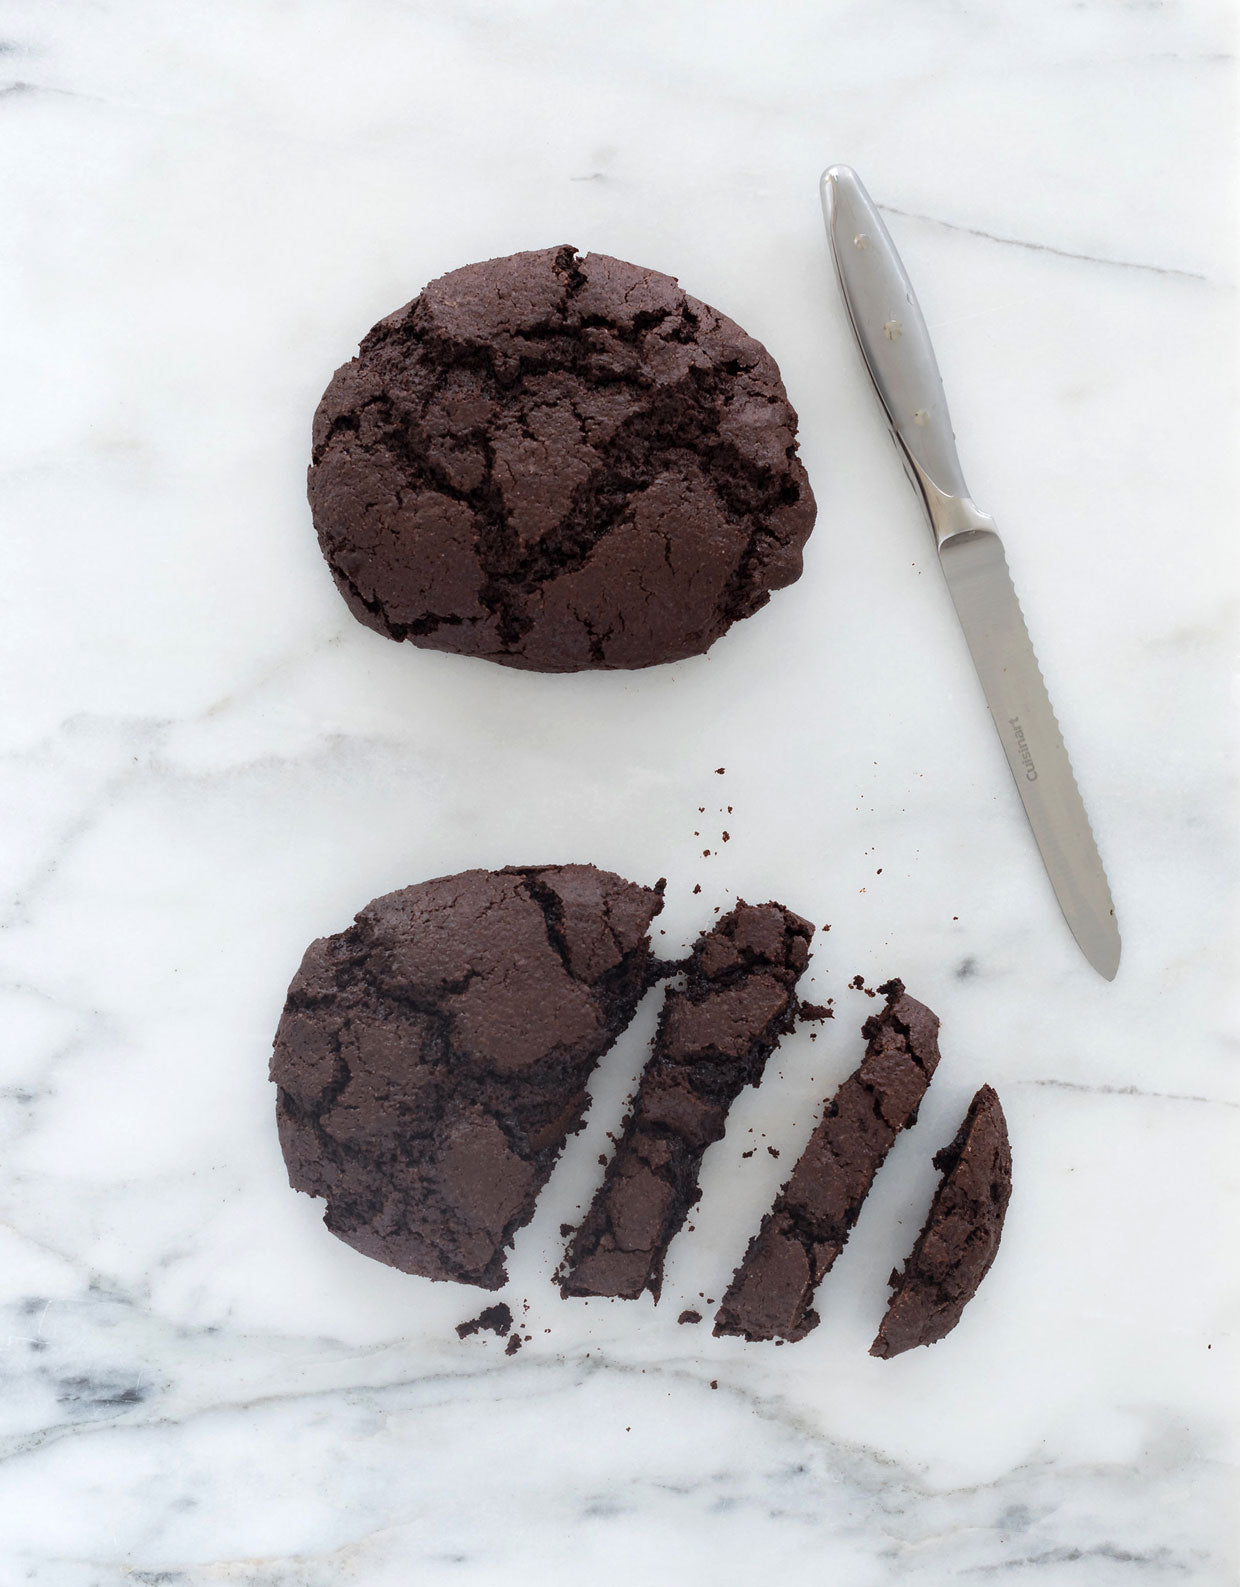 Image of top of two Miss Jones Baking Co Easy Chocolate Peppermint Cake Mix Biscotti cookies, one of which is partially cut into slices, on a marble counter next to a knife